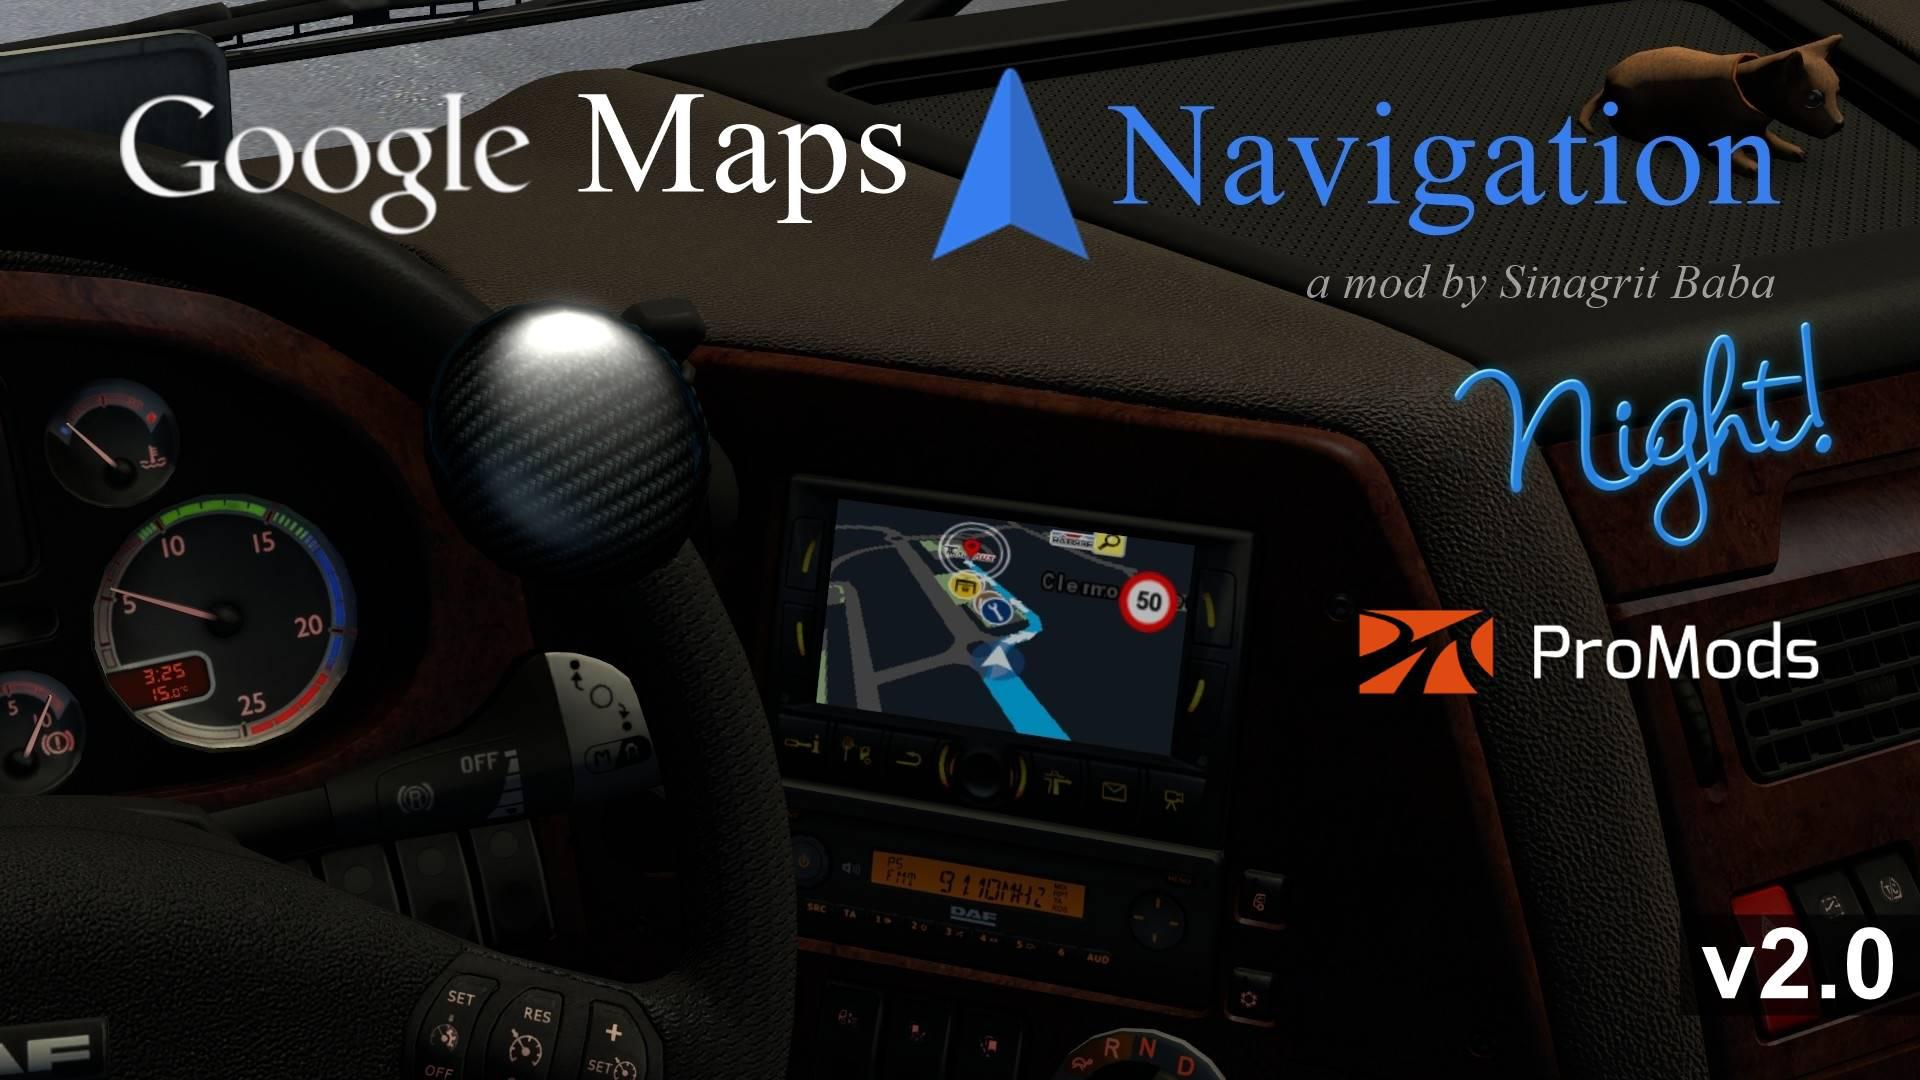 ETS2 - Google Maps Navigation Night Version for Promods V2.0 (1.35.X)